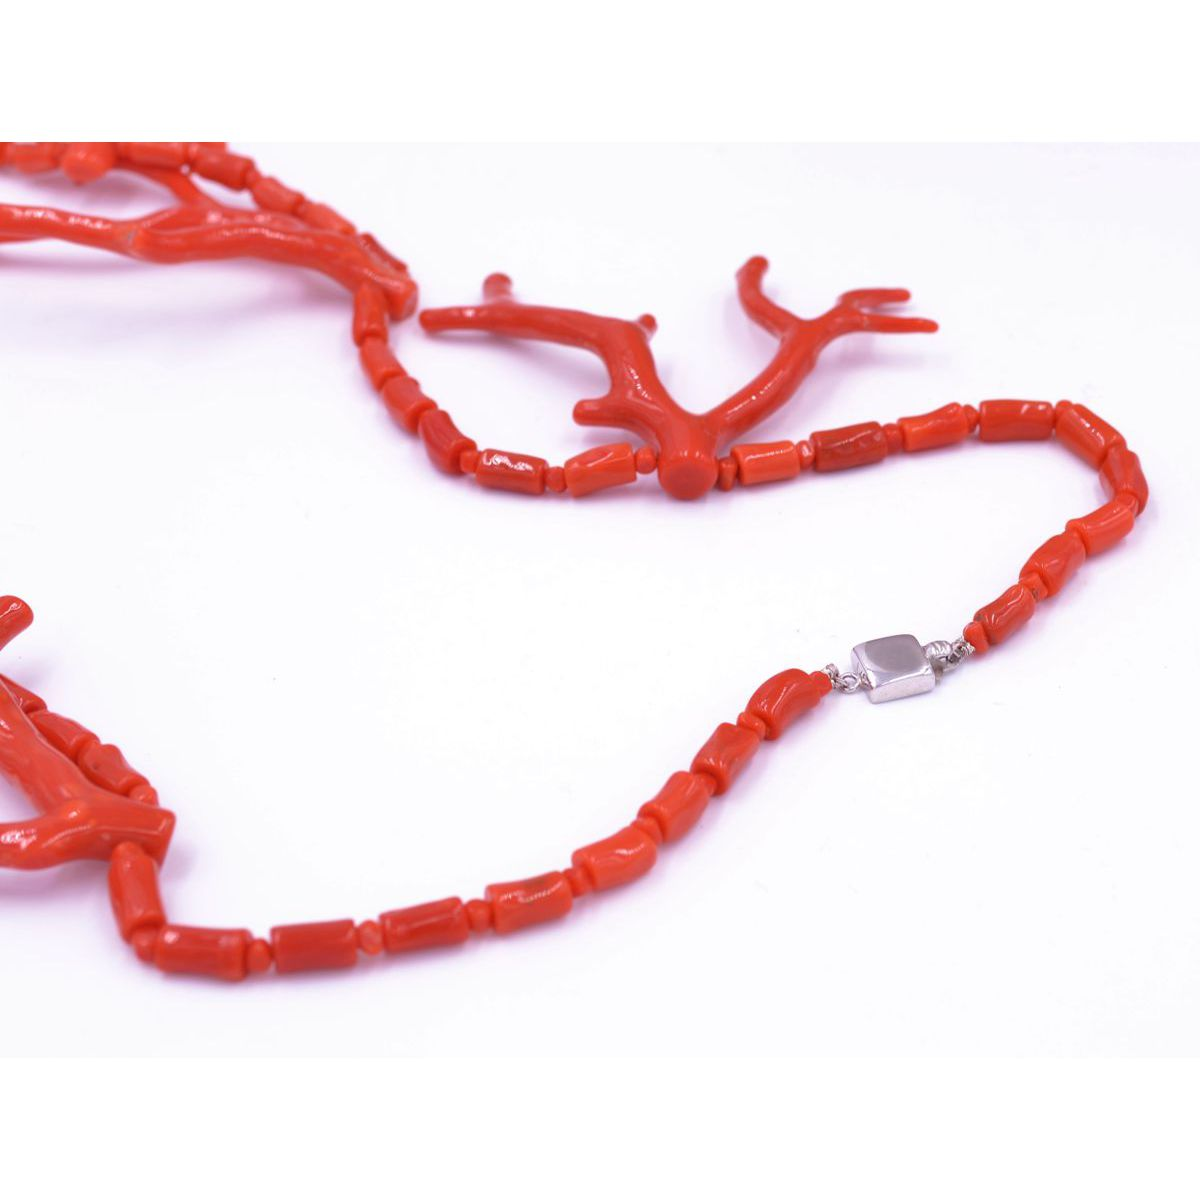 CORAL NECKLACE BRANCHES Red BRASS Gioielli